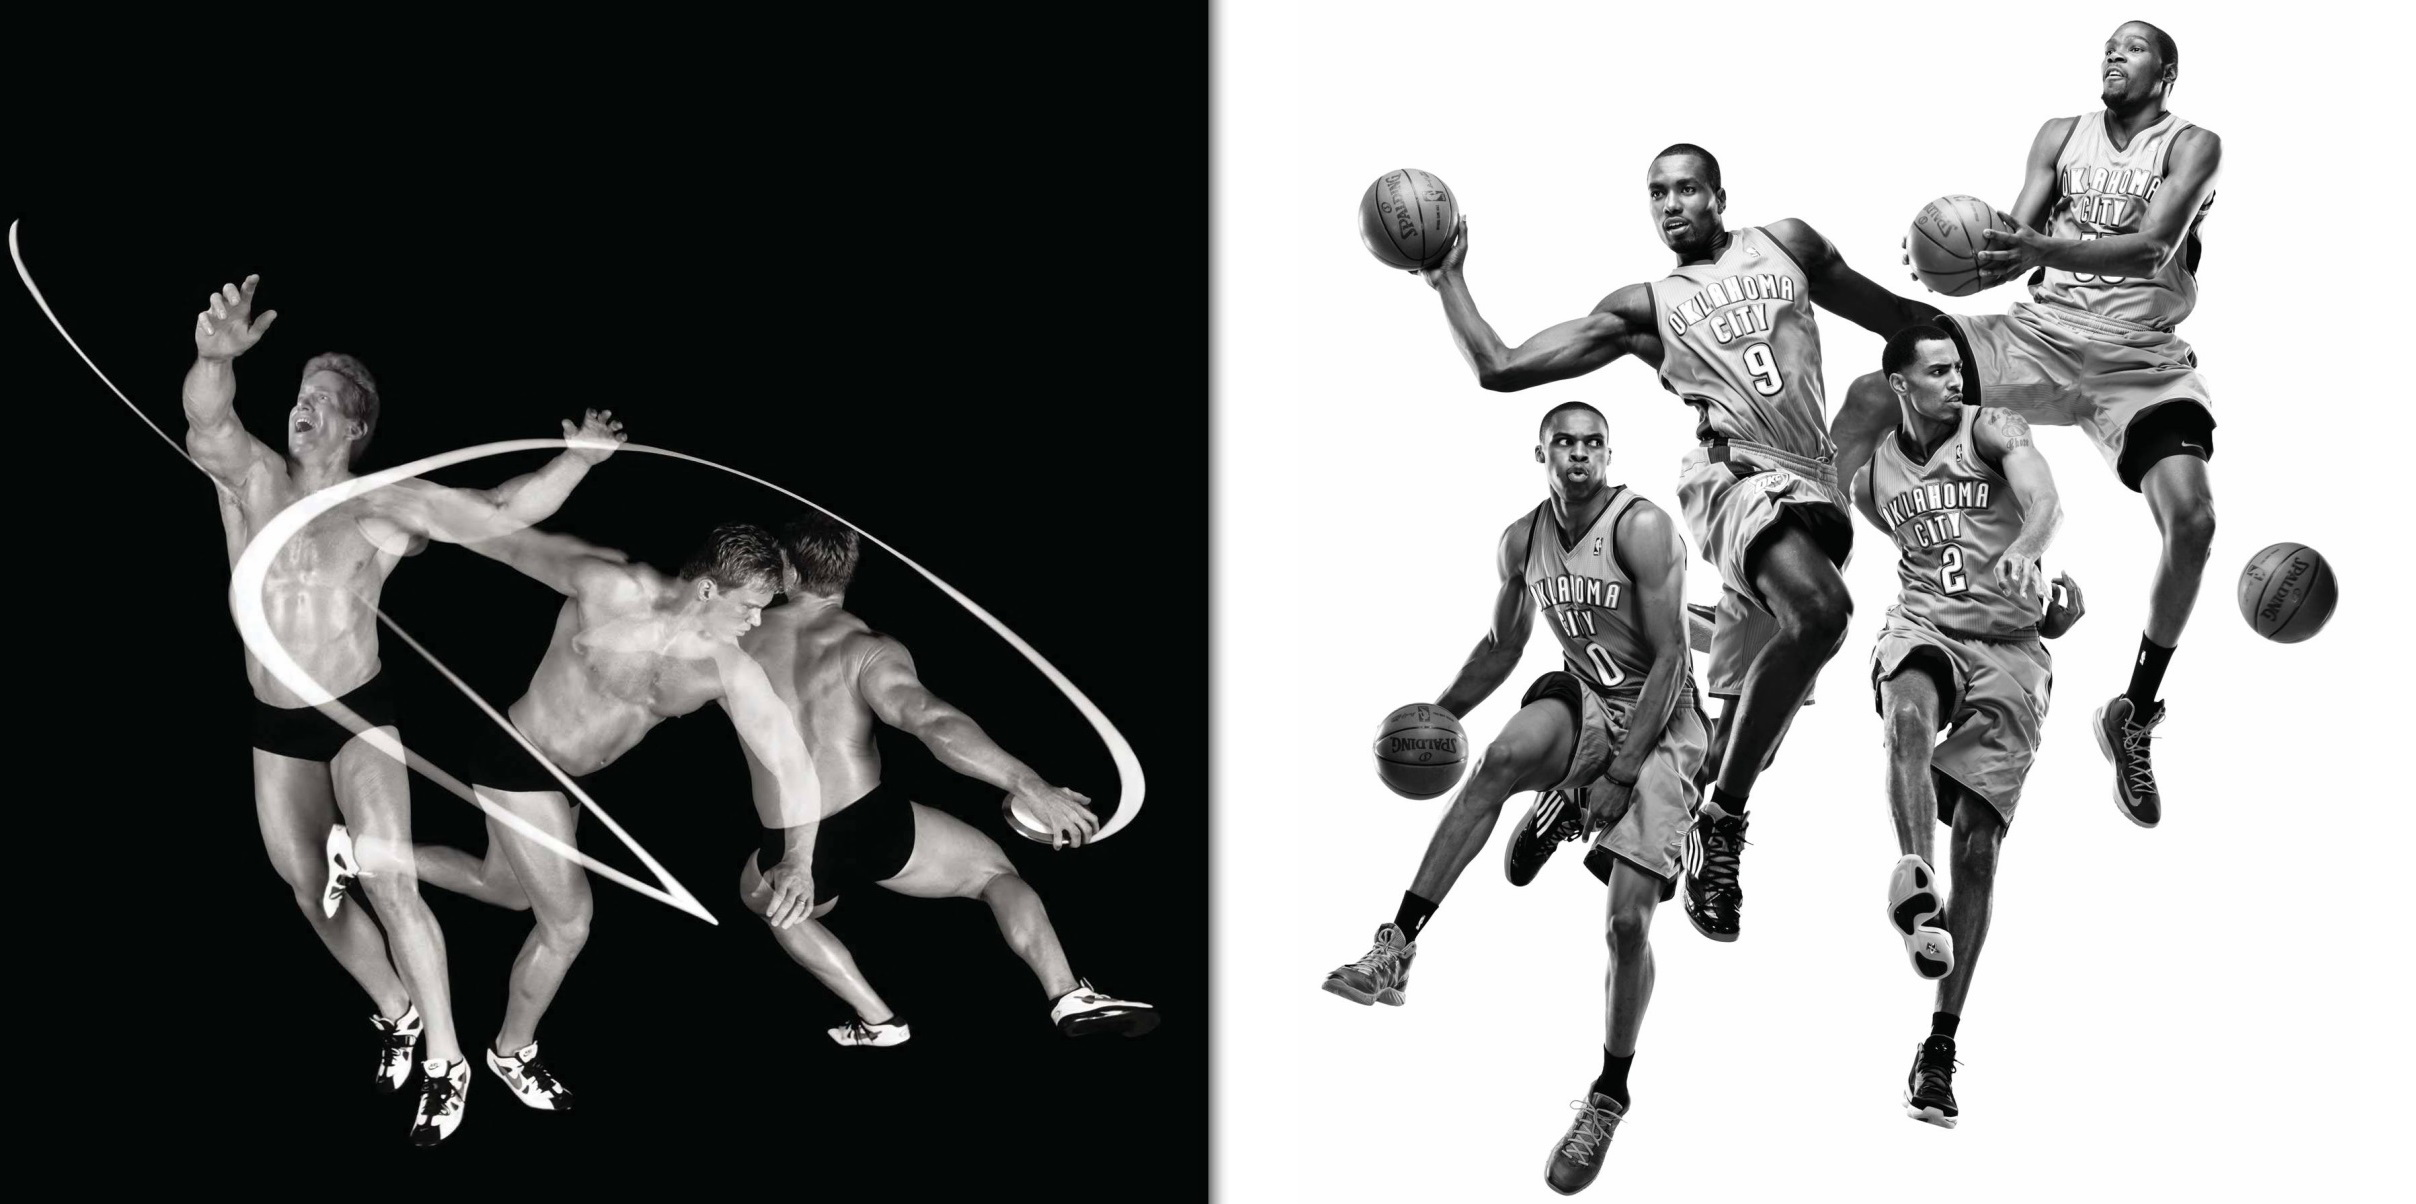 Left: Adam Setliff, US Olympic discus thrower, photographed in Los Angeles, February 2001. This is the path the discus takes before release. Right: Oklahoma Thunder NBA team members: Russell Westbrook, Serge Ibaka, Thabo Sefolosha, Kevin Durant, photographed for the cover of the New York Times Sunday Magazine in Oklahoma City, OK, October 2012. These four images were collaged into one.  © Howard Schatz and Beverly Ornstein